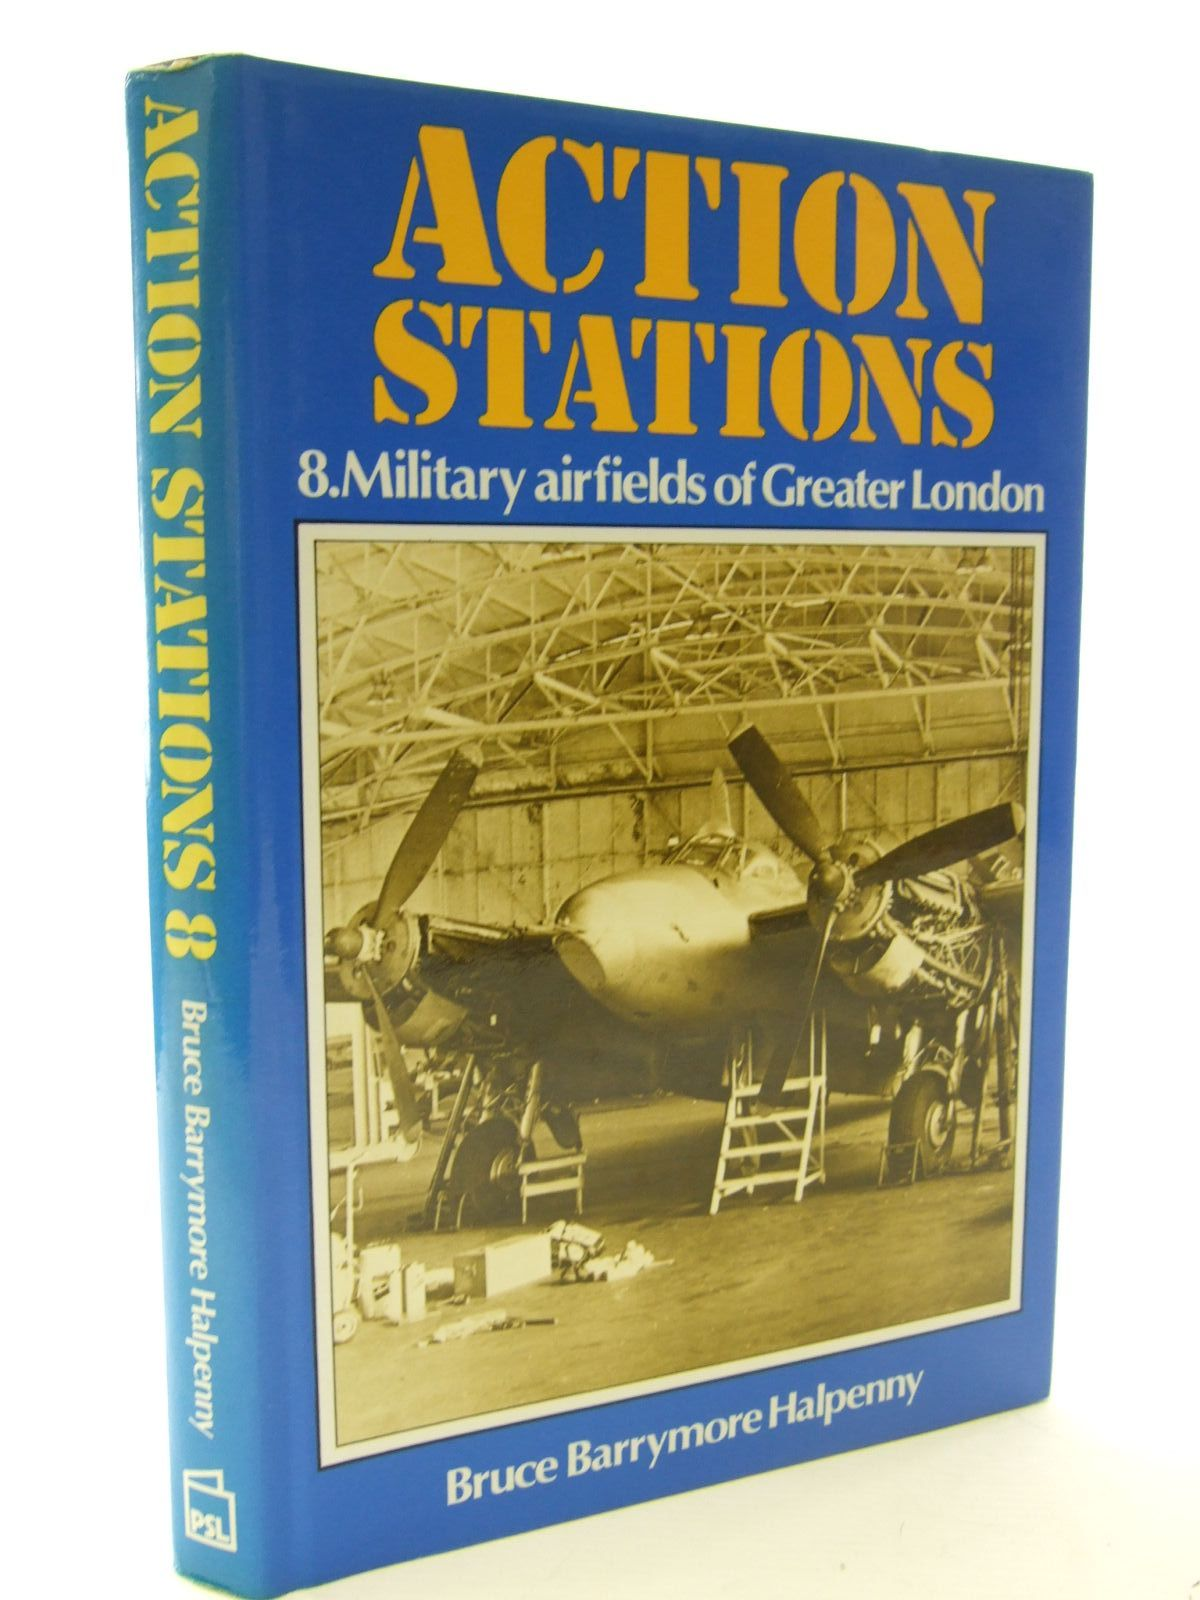 Photo of ACTION STATIONS 8 MILITARY AIRFIELDS OF GREATER LONDON written by Halpenny, Bruce Barrymore published by Patrick Stephens (STOCK CODE: 1706081)  for sale by Stella & Rose's Books